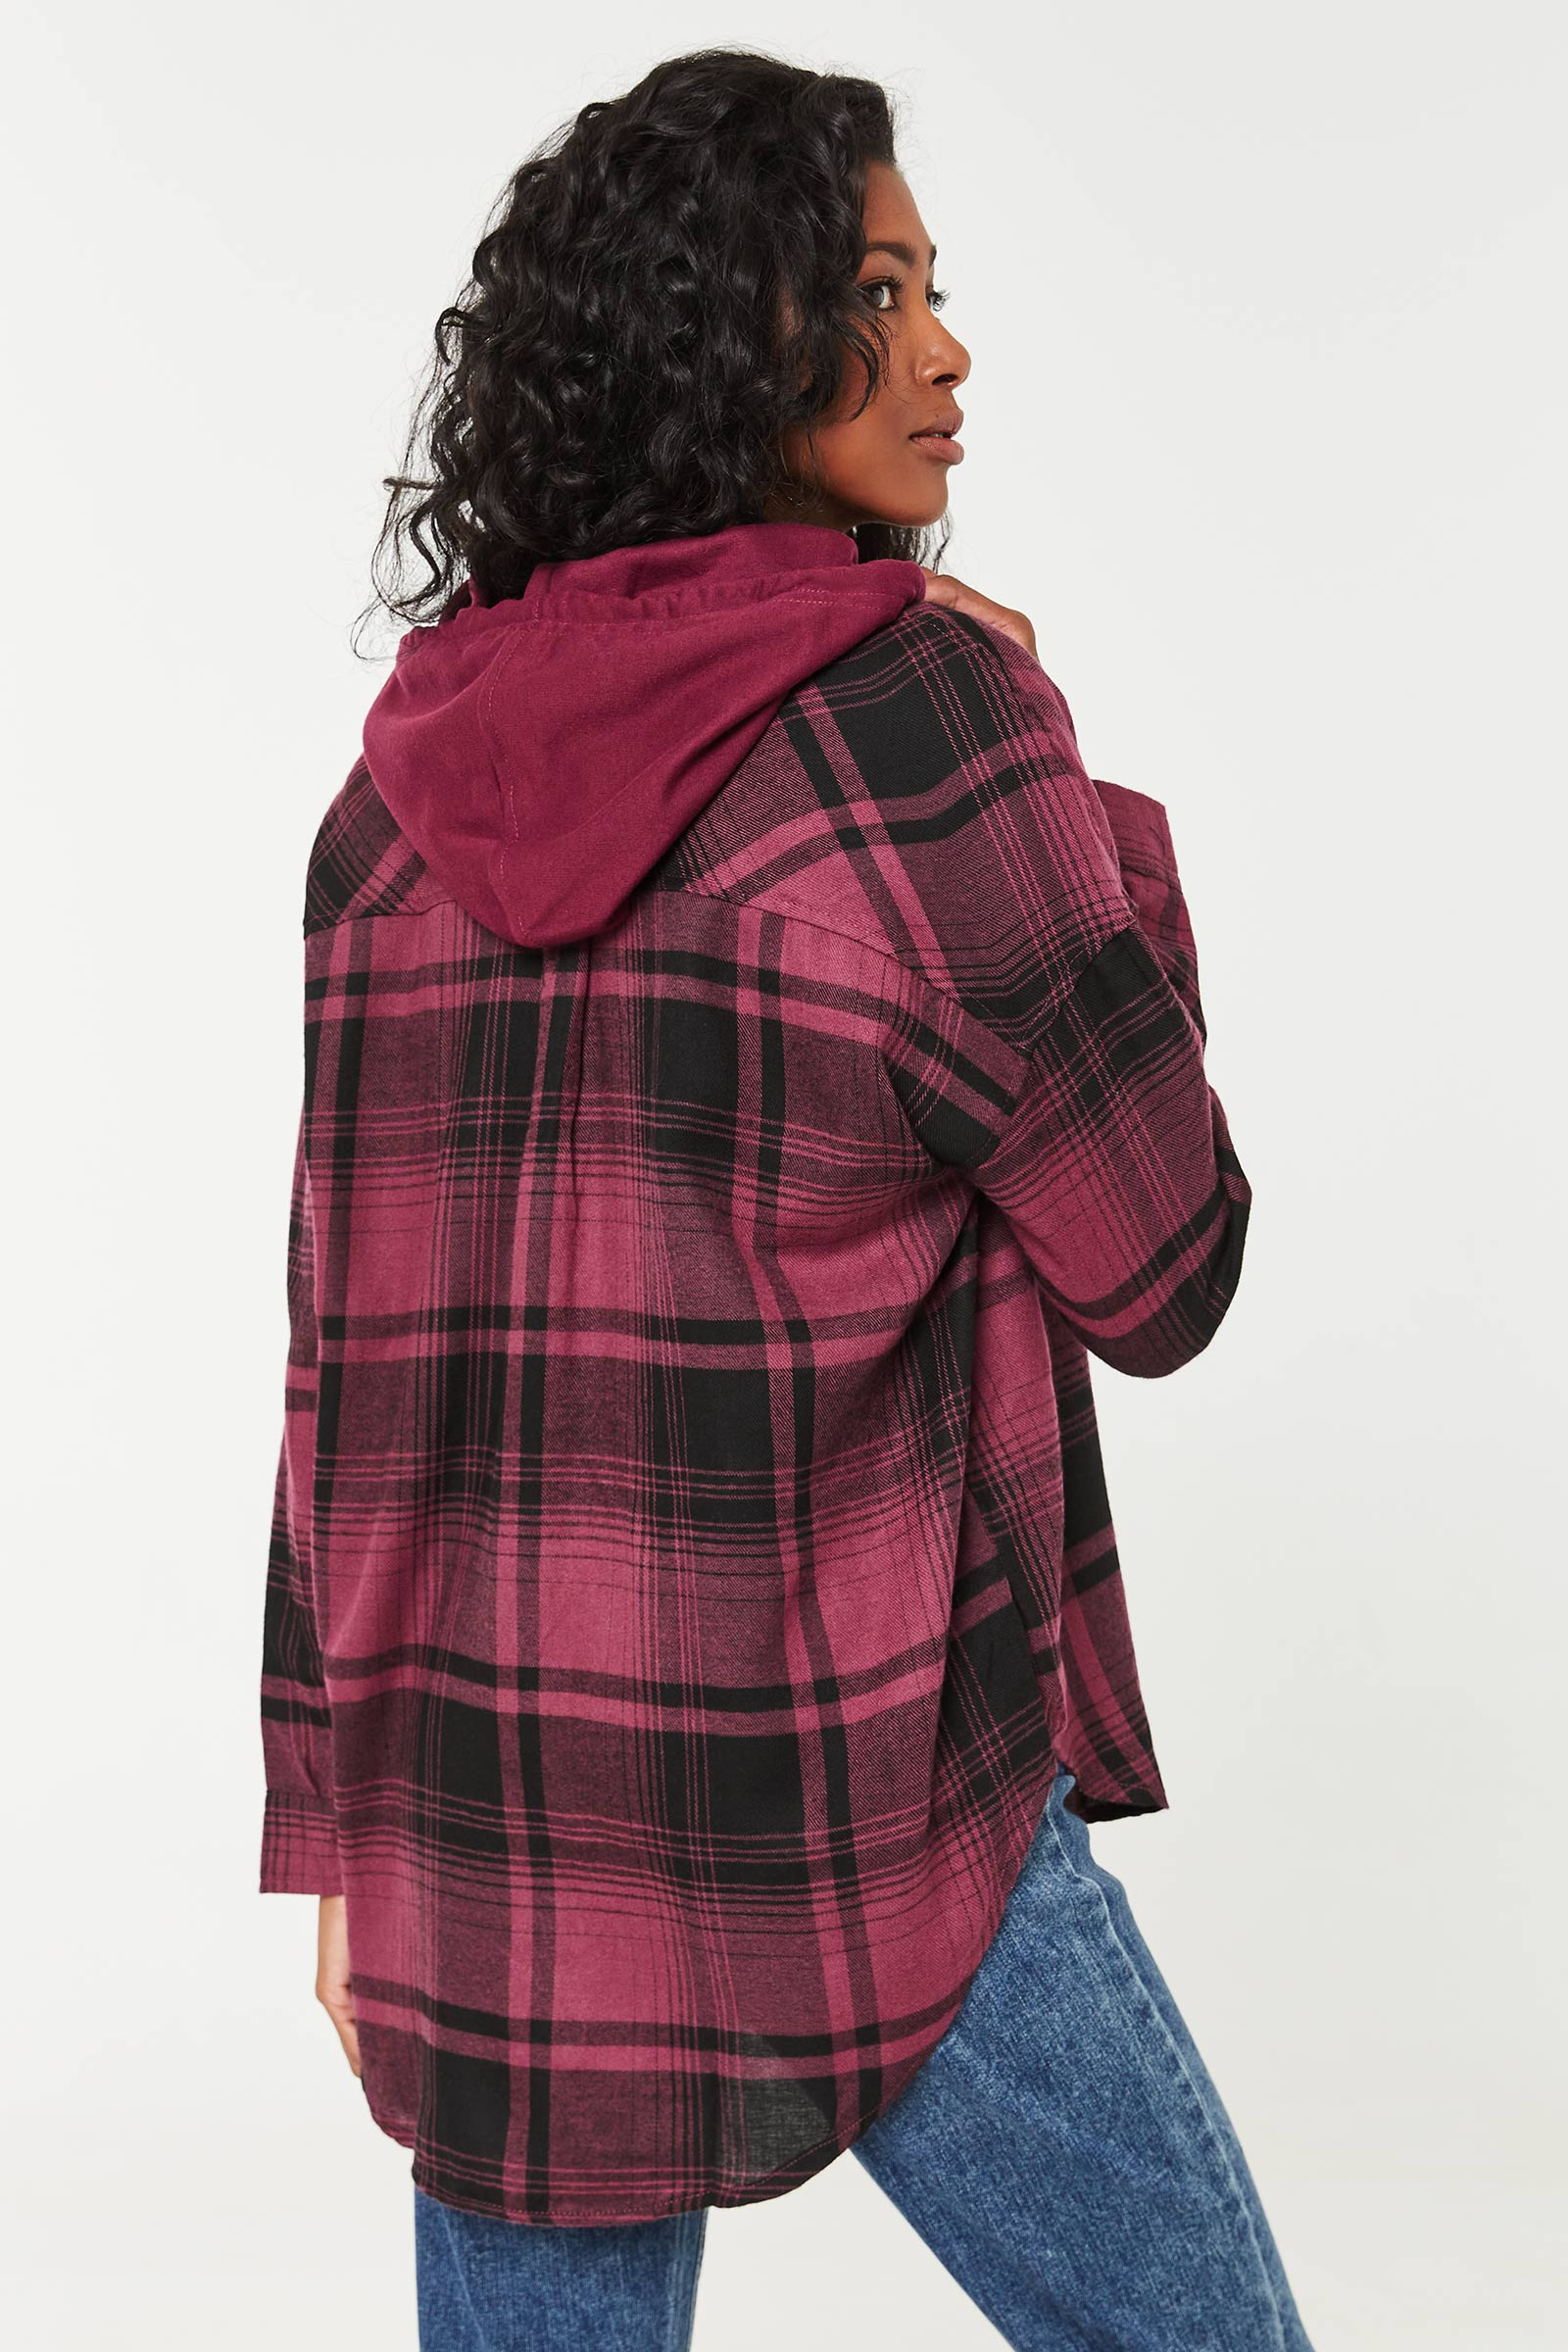 Plaid Oversized Flannel Shirt with Hood